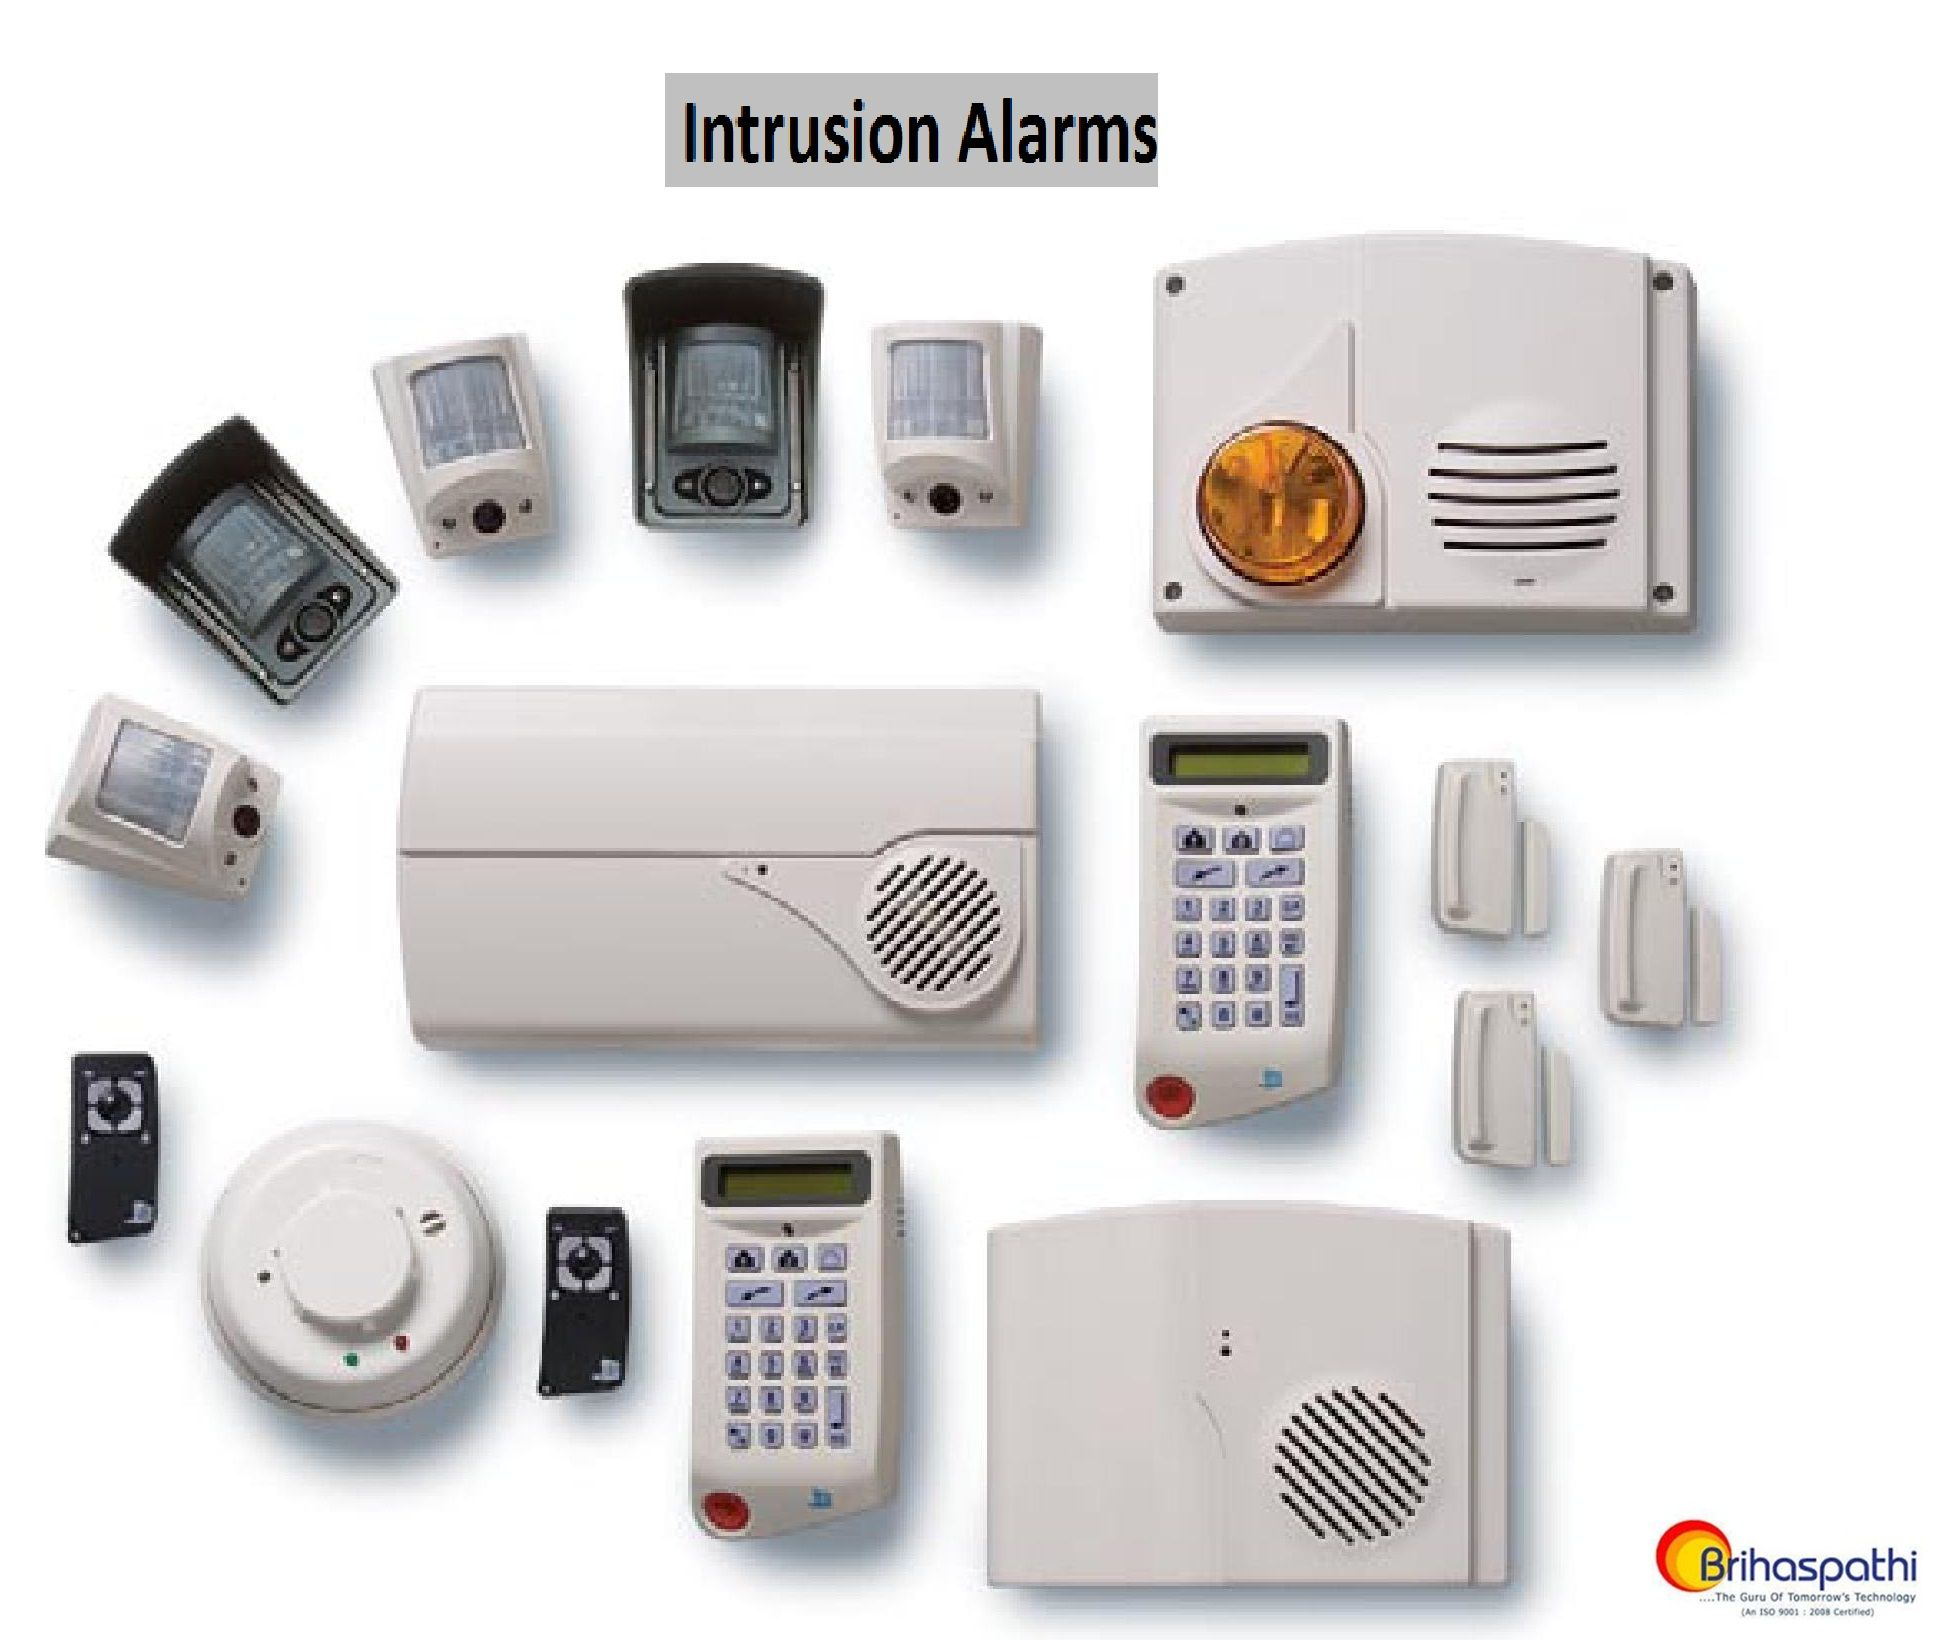 Brihaspathitechnologies Offers Intrusionalarms That Meet Security Needs Of Small Medium And Large With Images Alarm Systems For Home Home Security Systems Alarm System